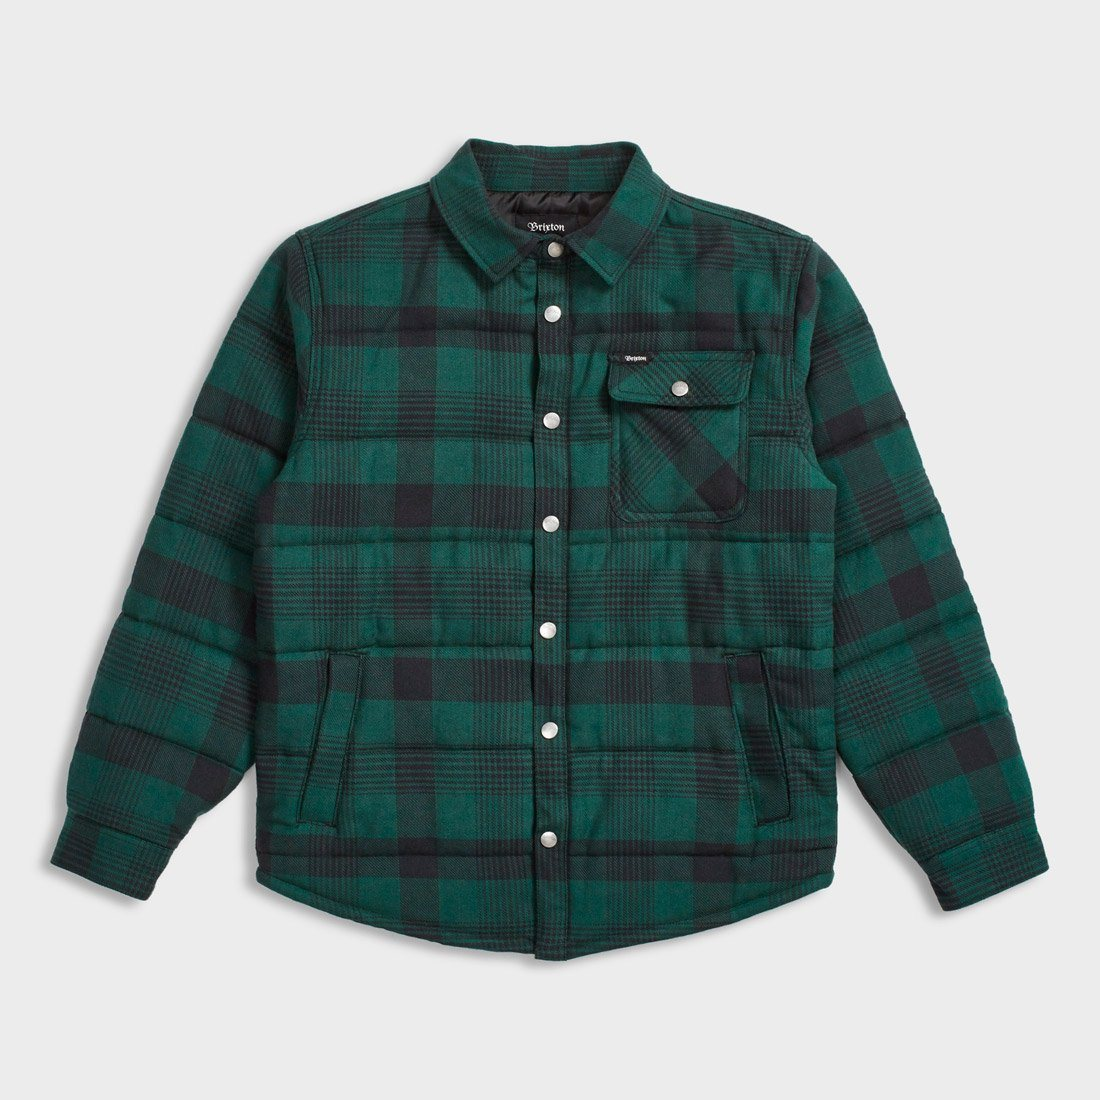 Brixton Cass Jacket Black/Green